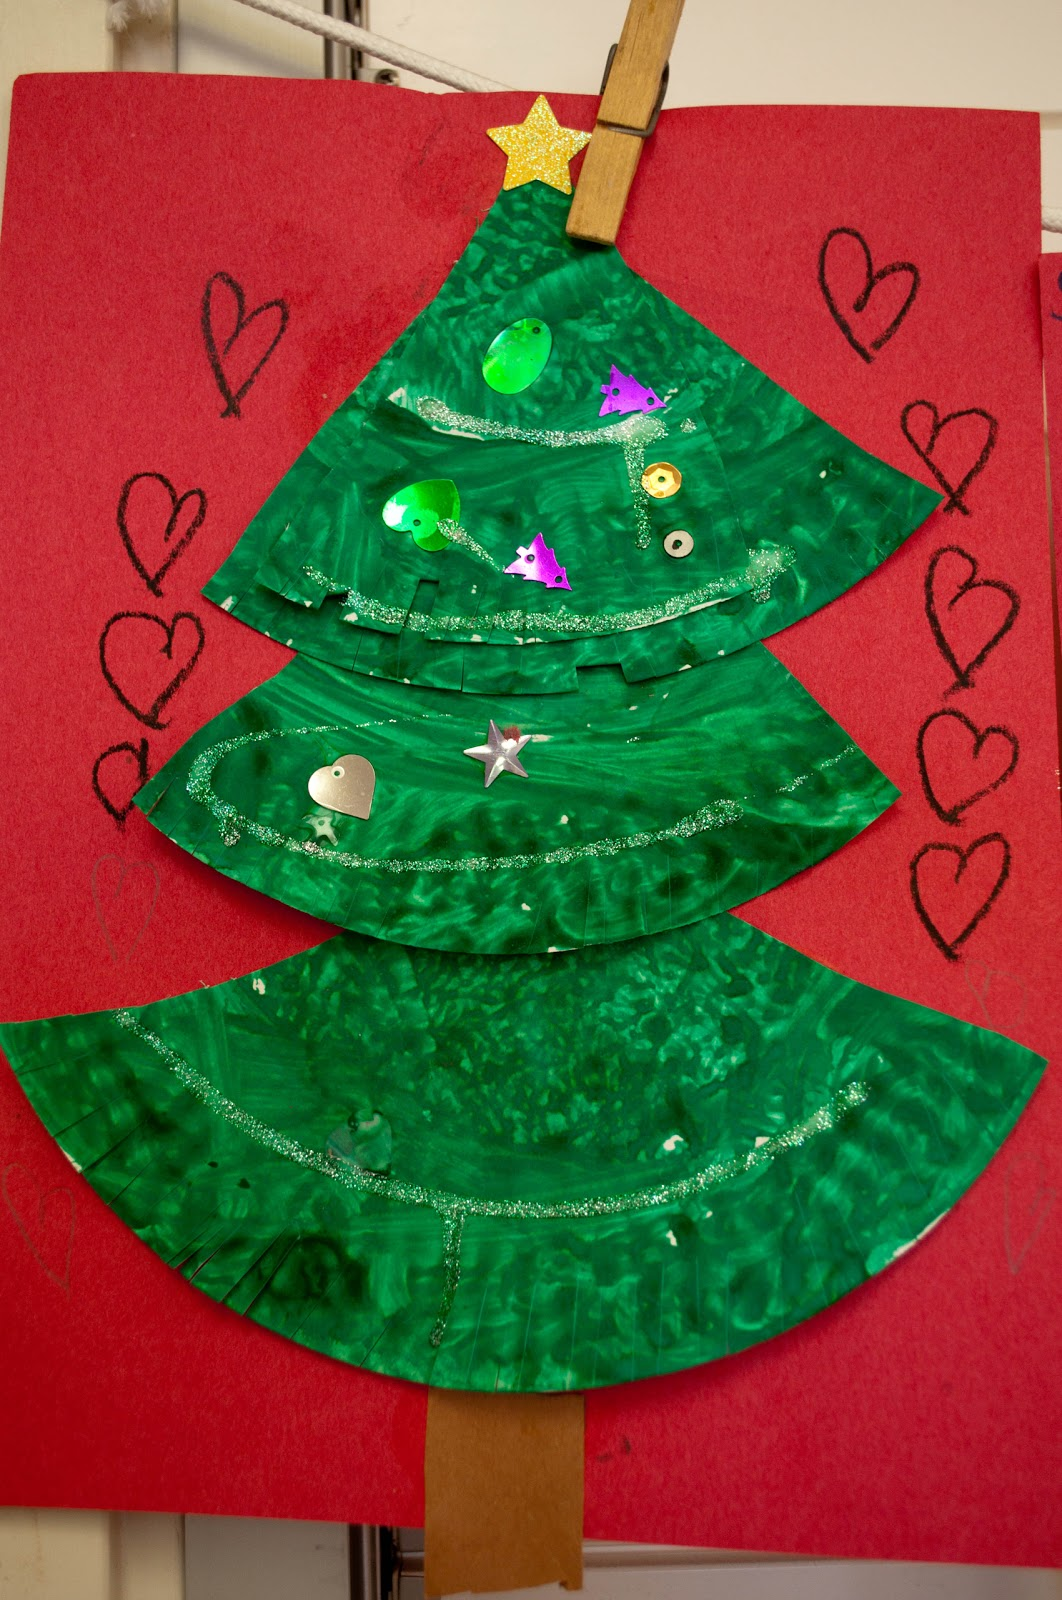 Ks1 Christmas Art